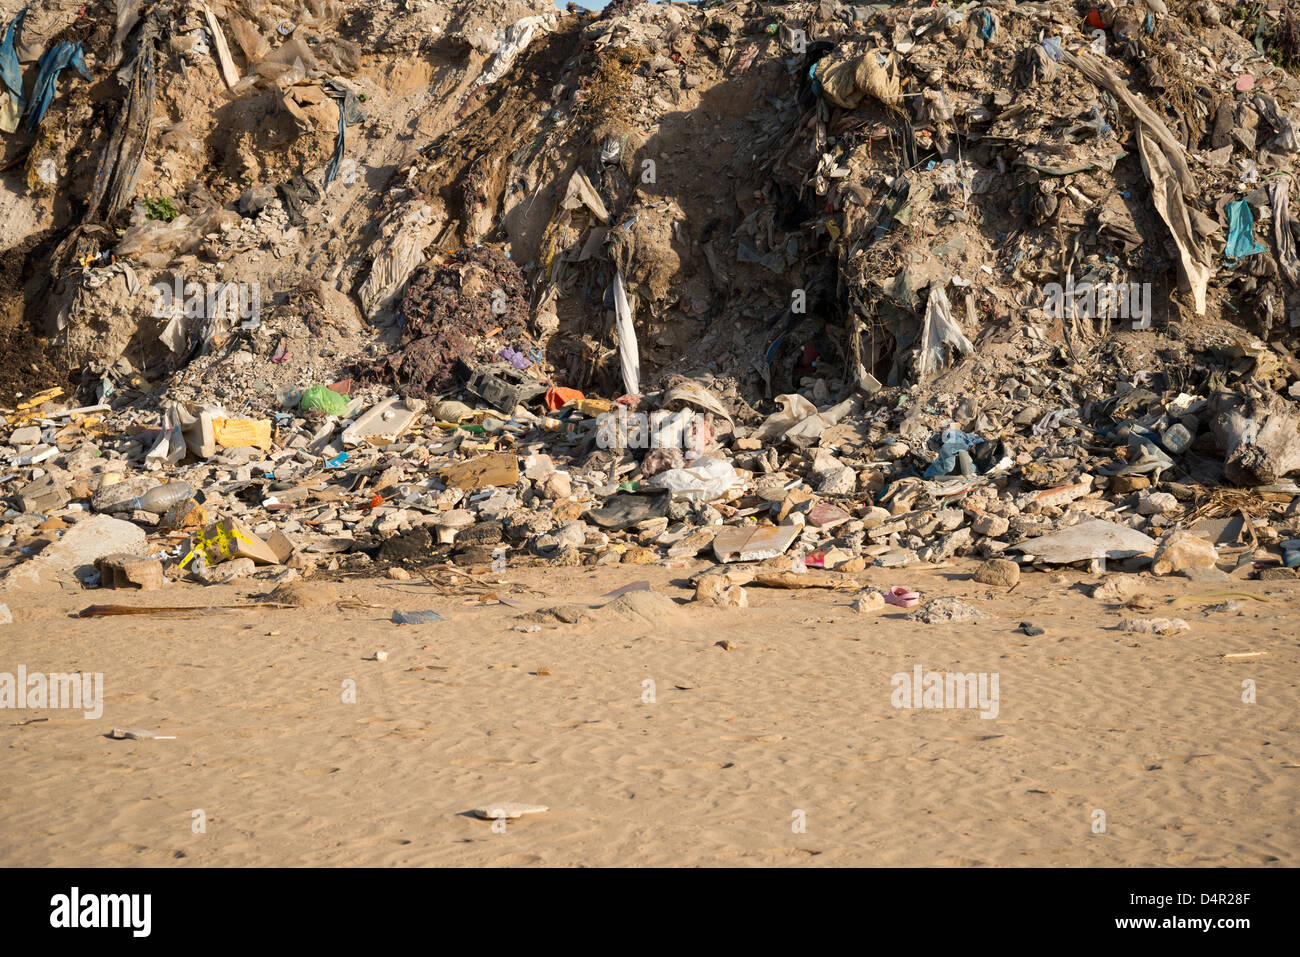 Rubbish dumped on the edge of a beach - Stock Image